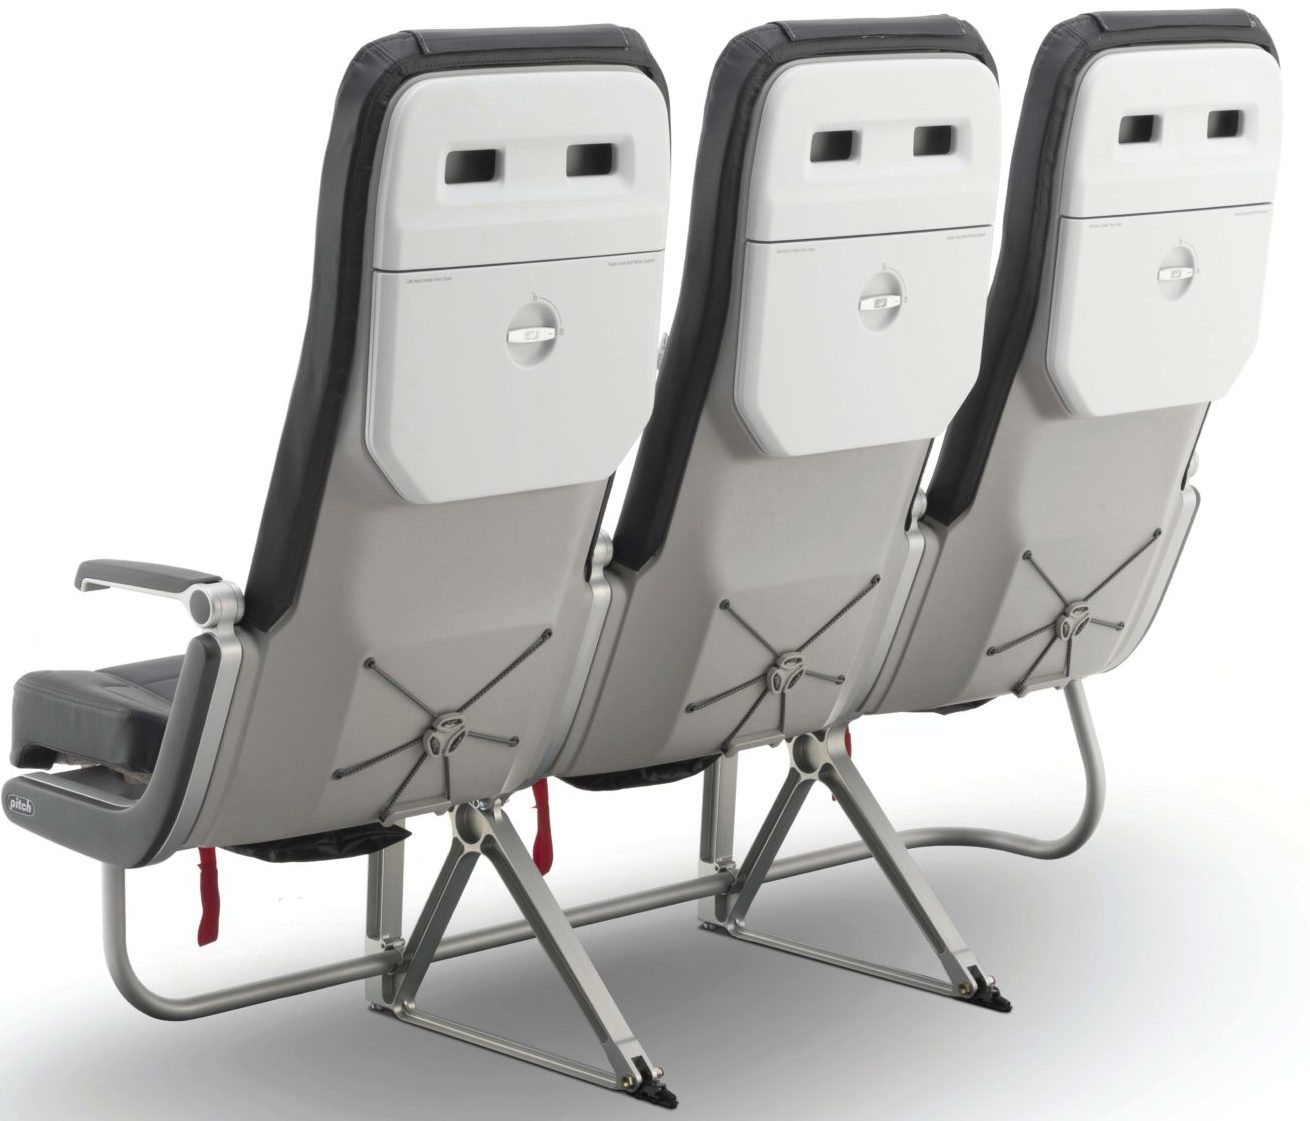 Press Release: Causeway acquires Pitch Aircraft Seating Systems